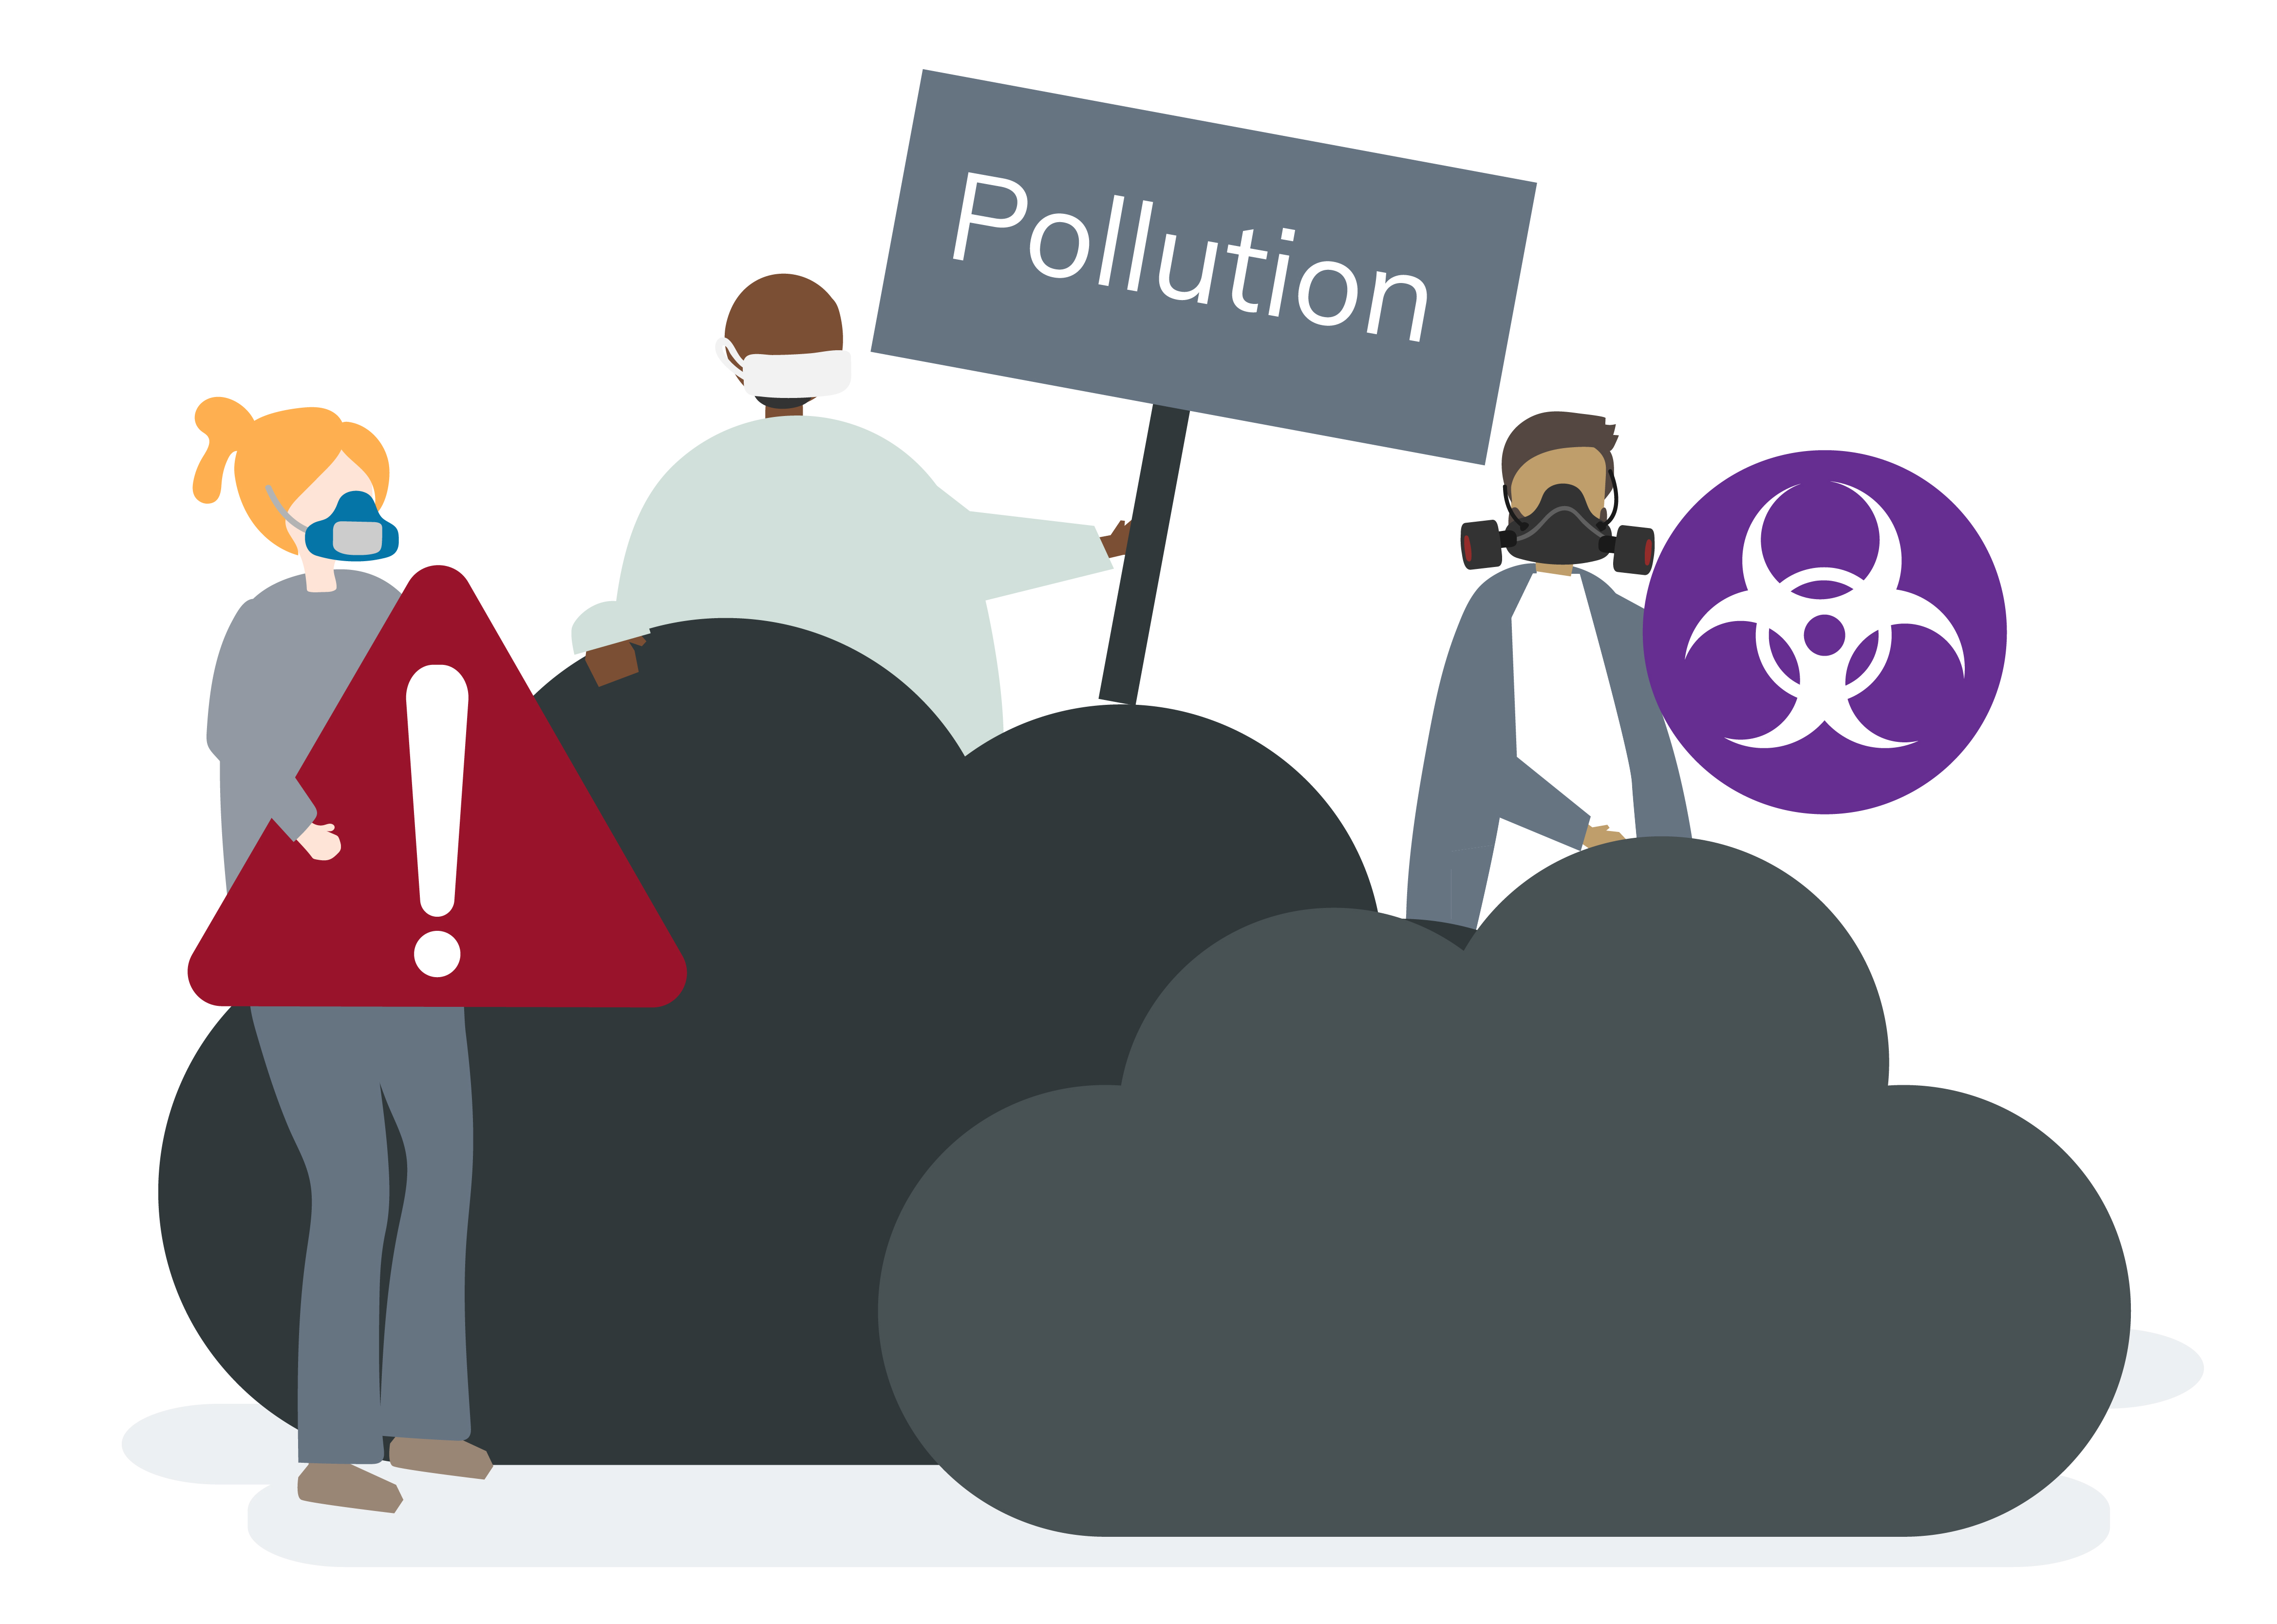 Pollution clipart bad air. Smog and download free